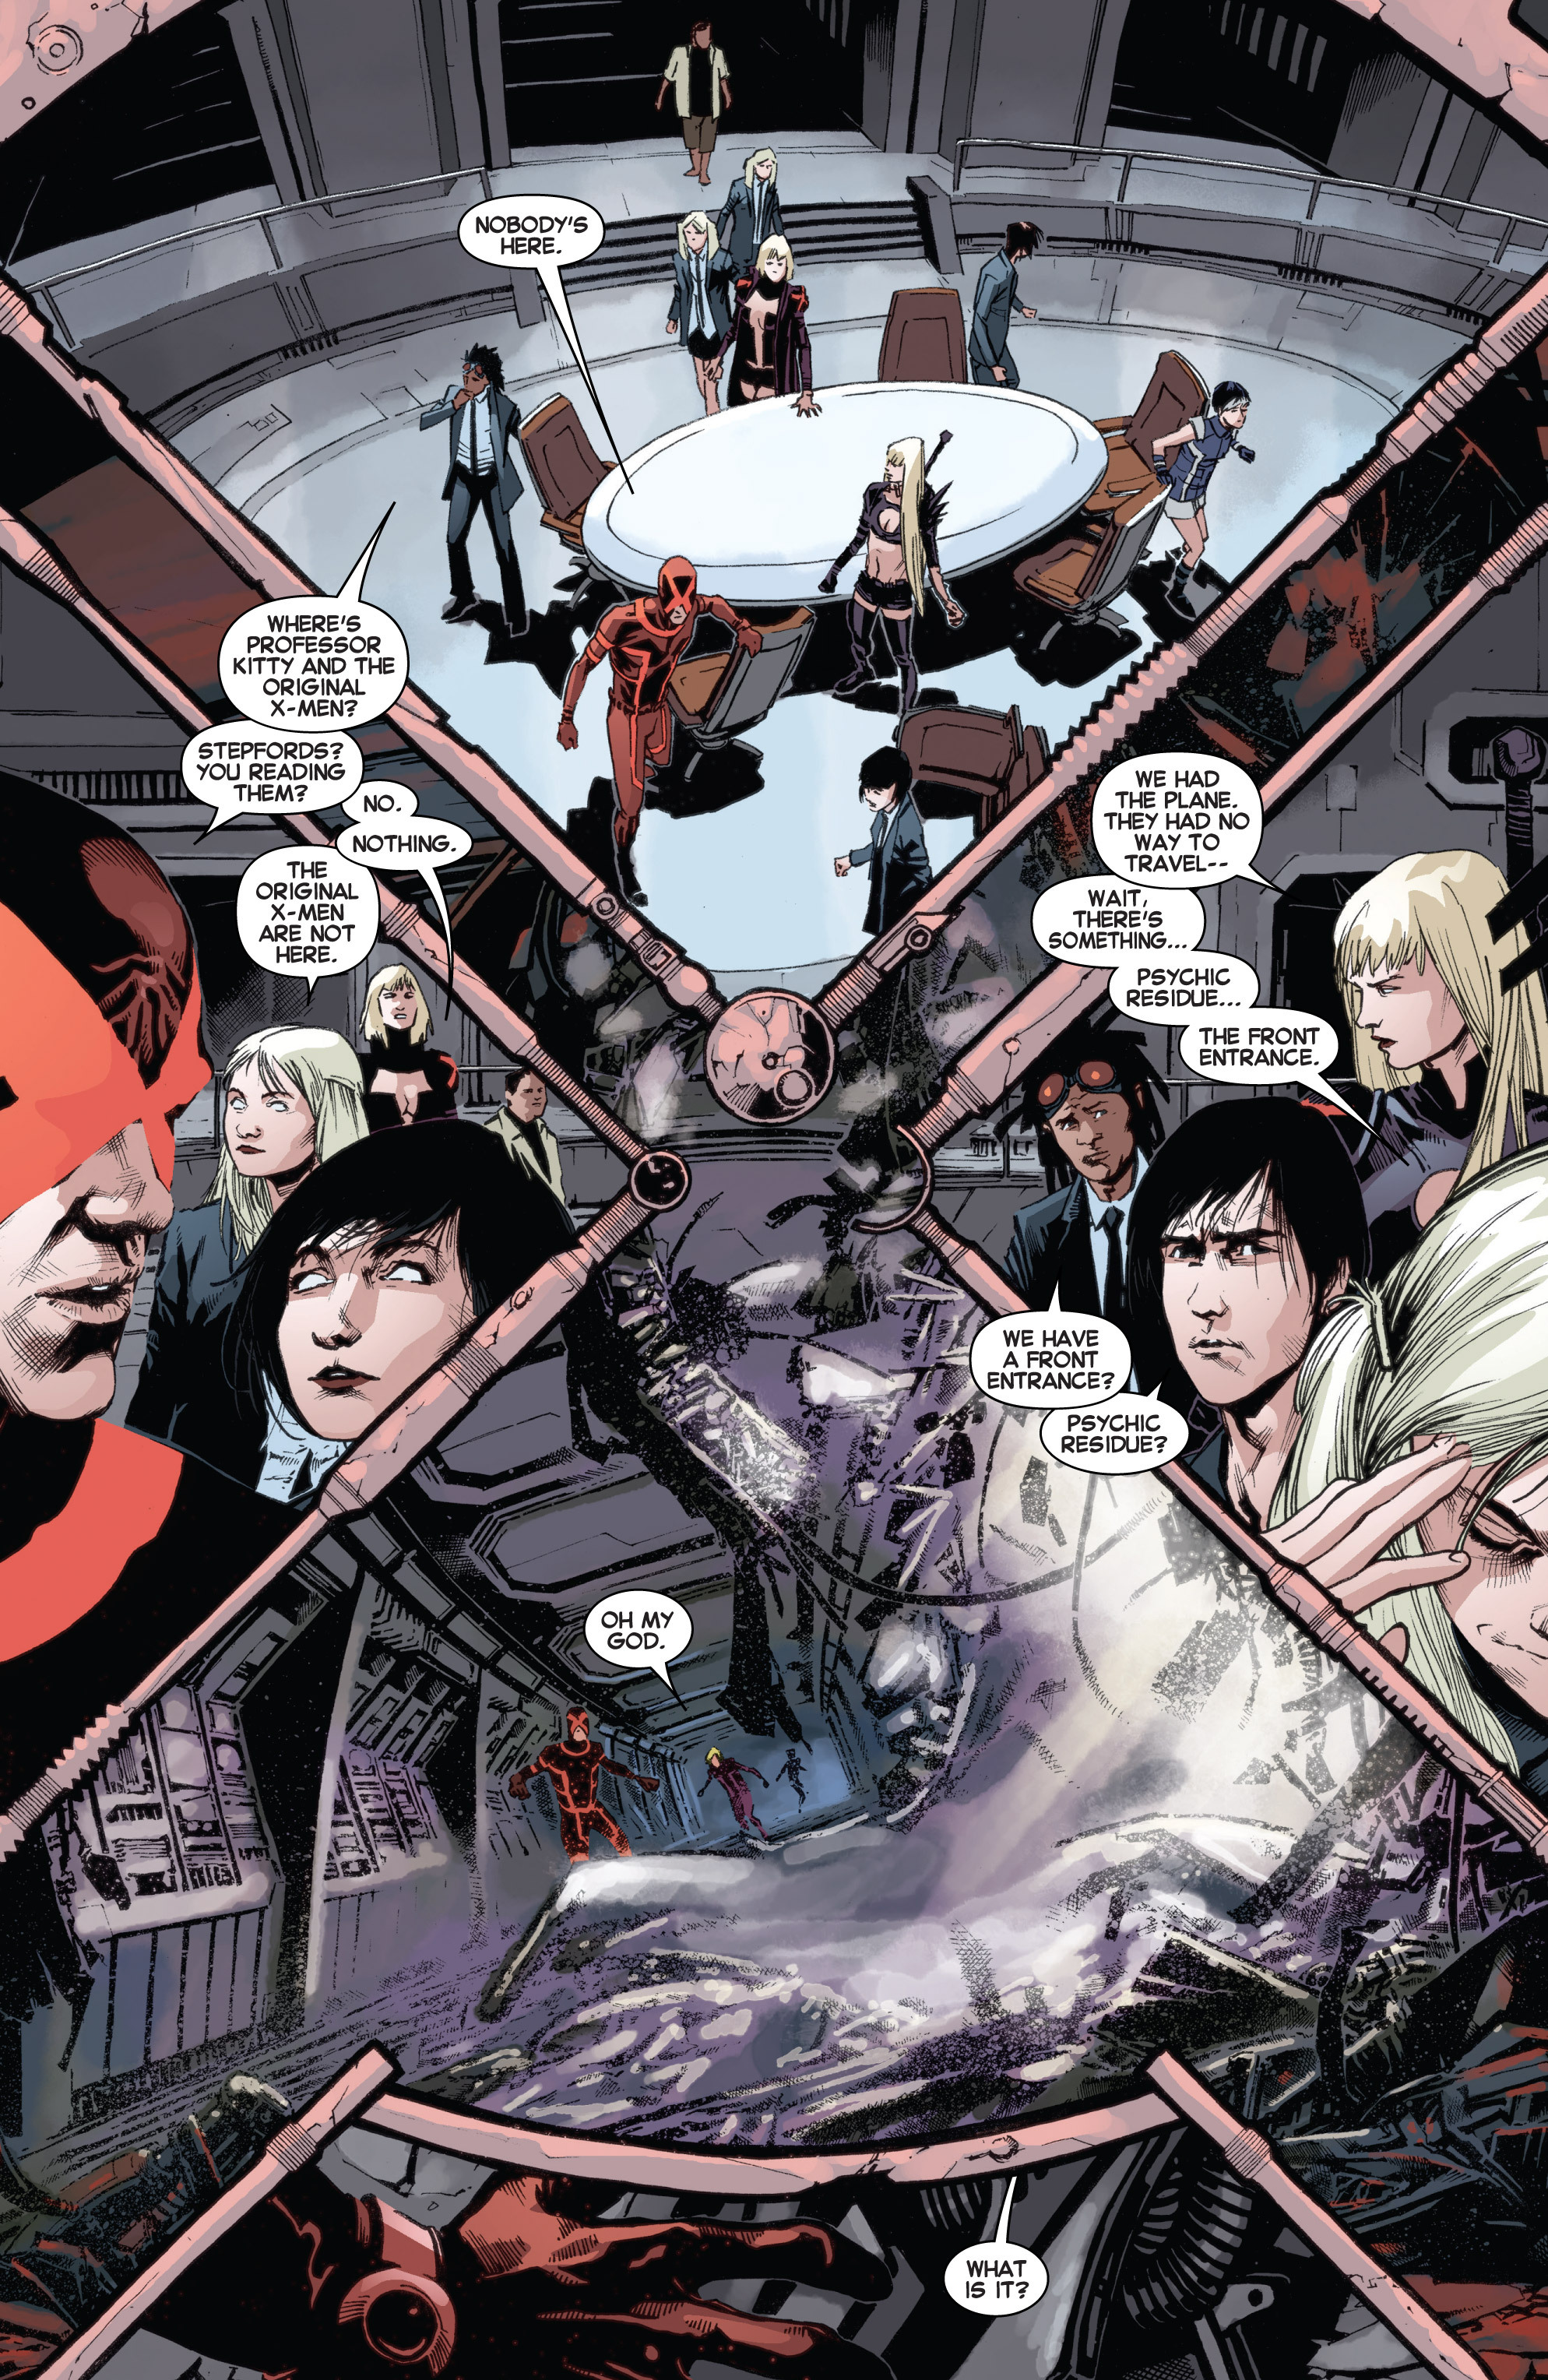 Read online Uncanny X-Men (2013) comic -  Issue # _TPB 3 - The Good, The Bad, The Inhuman - 88